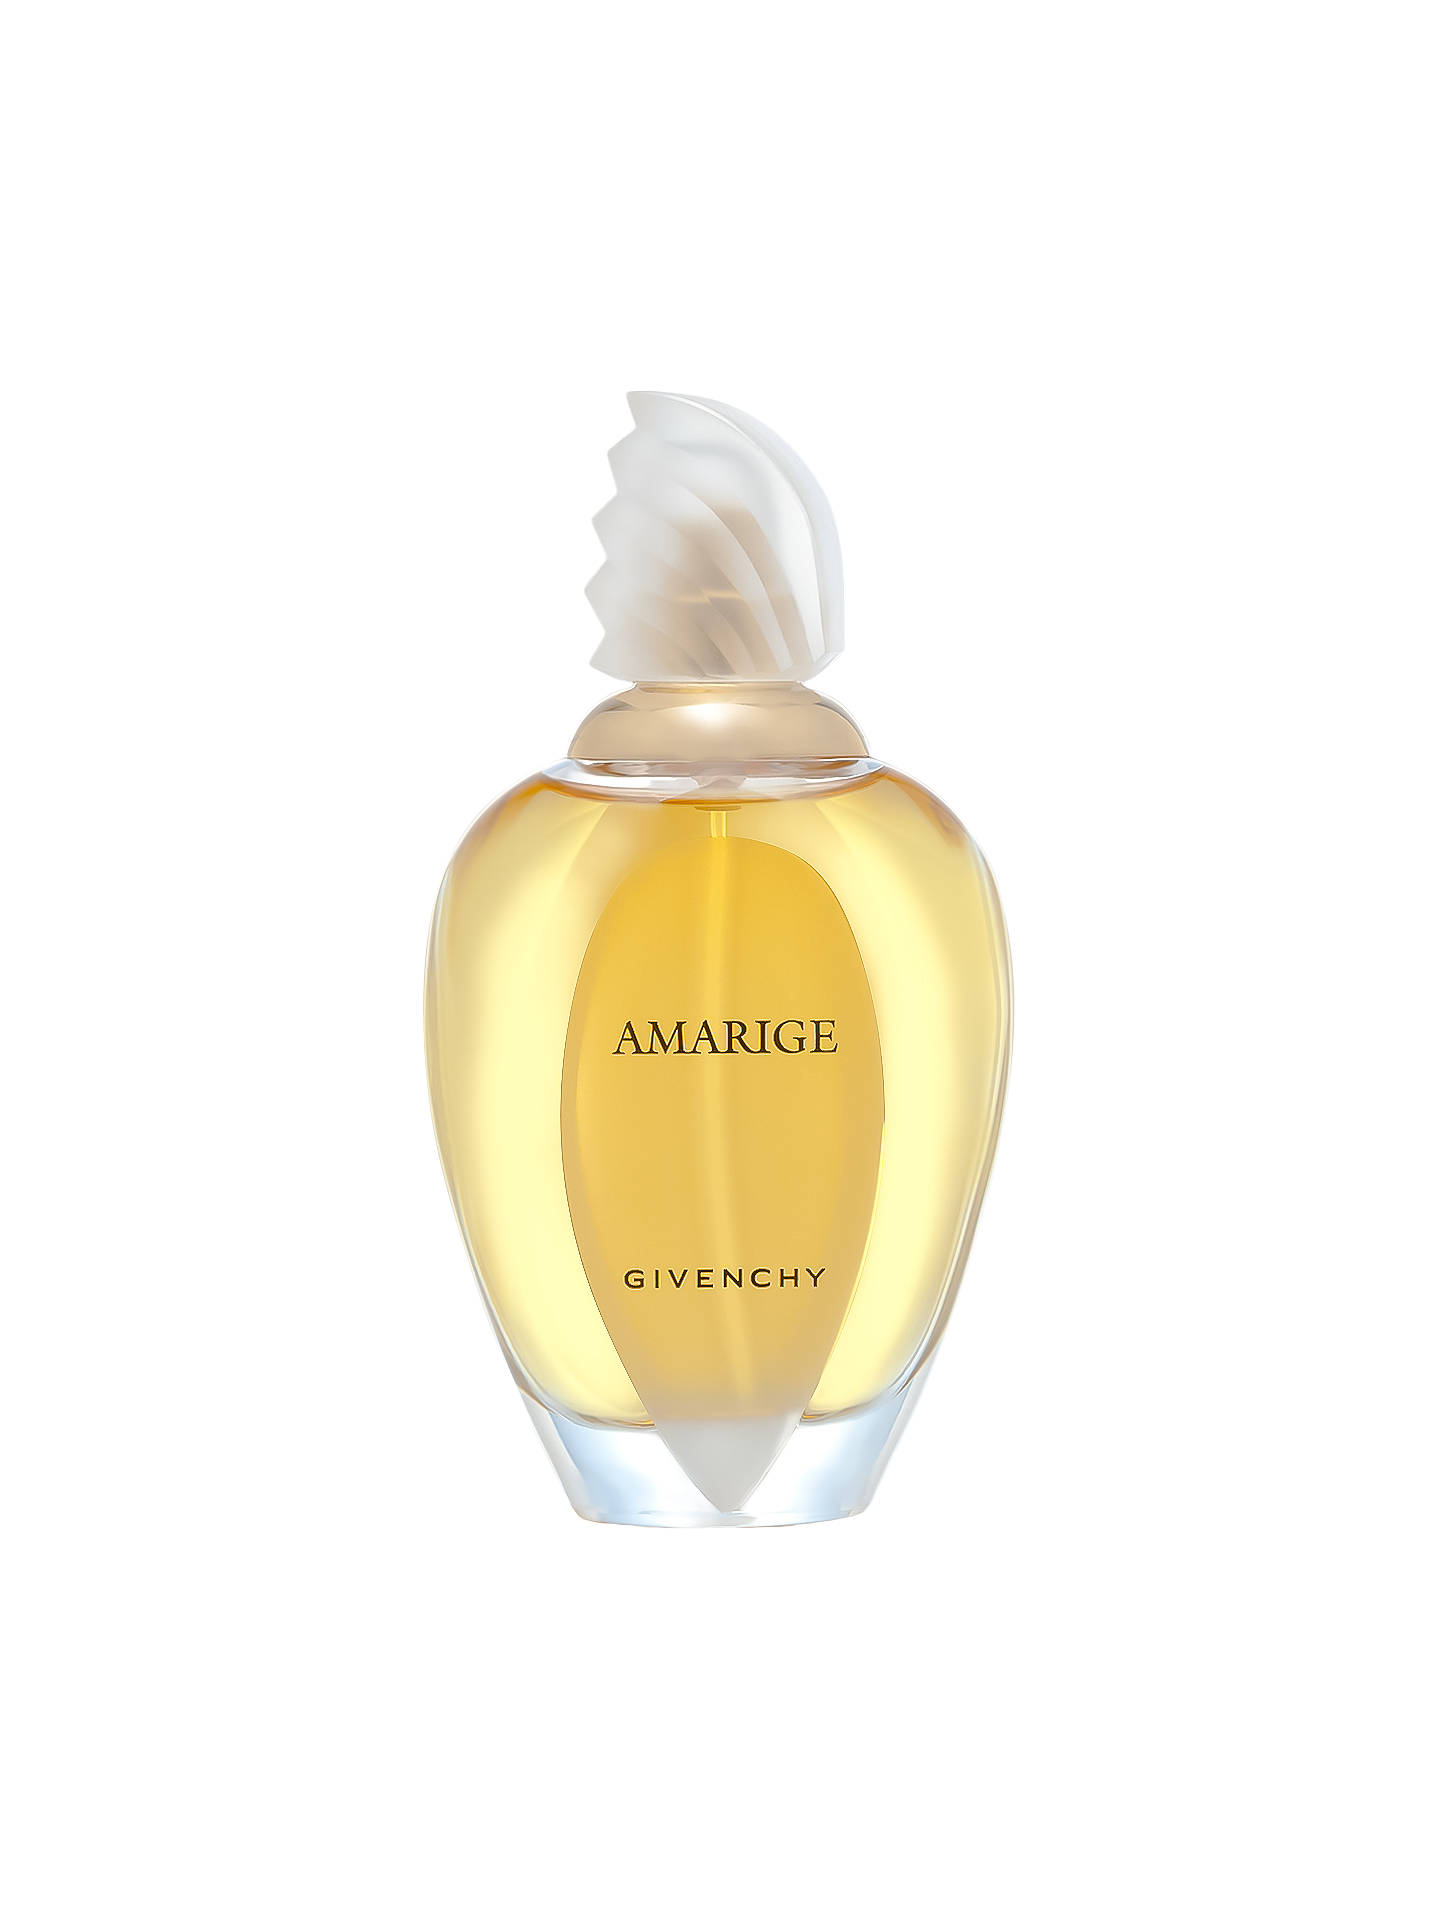 BuyGivenchy Amarige Eau de Toilette, 50ml Online at johnlewis.com